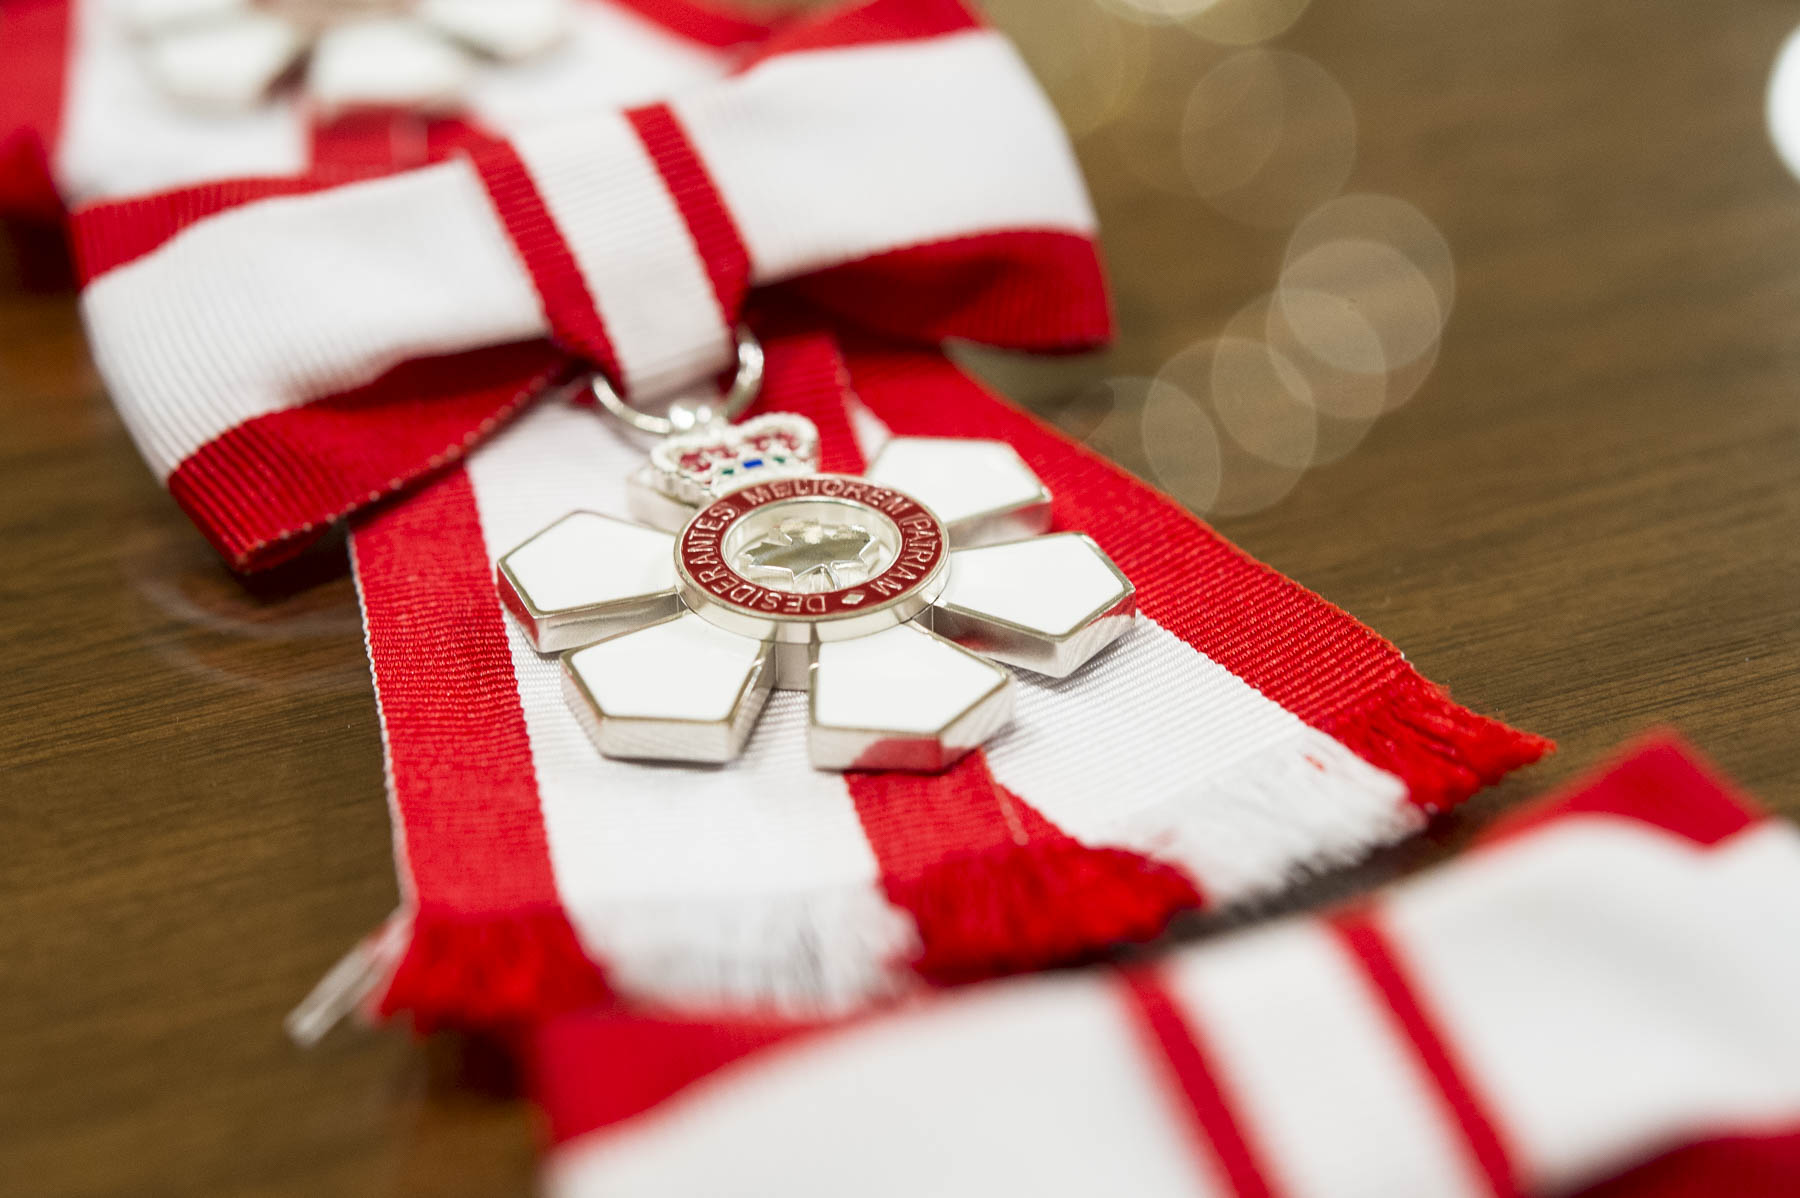 On August 25, 2017, Governor General David Johnston invested 44 recipients into the Order of Canada, one of our country's highest honour, during an investiture ceremony at Rideau Hall.